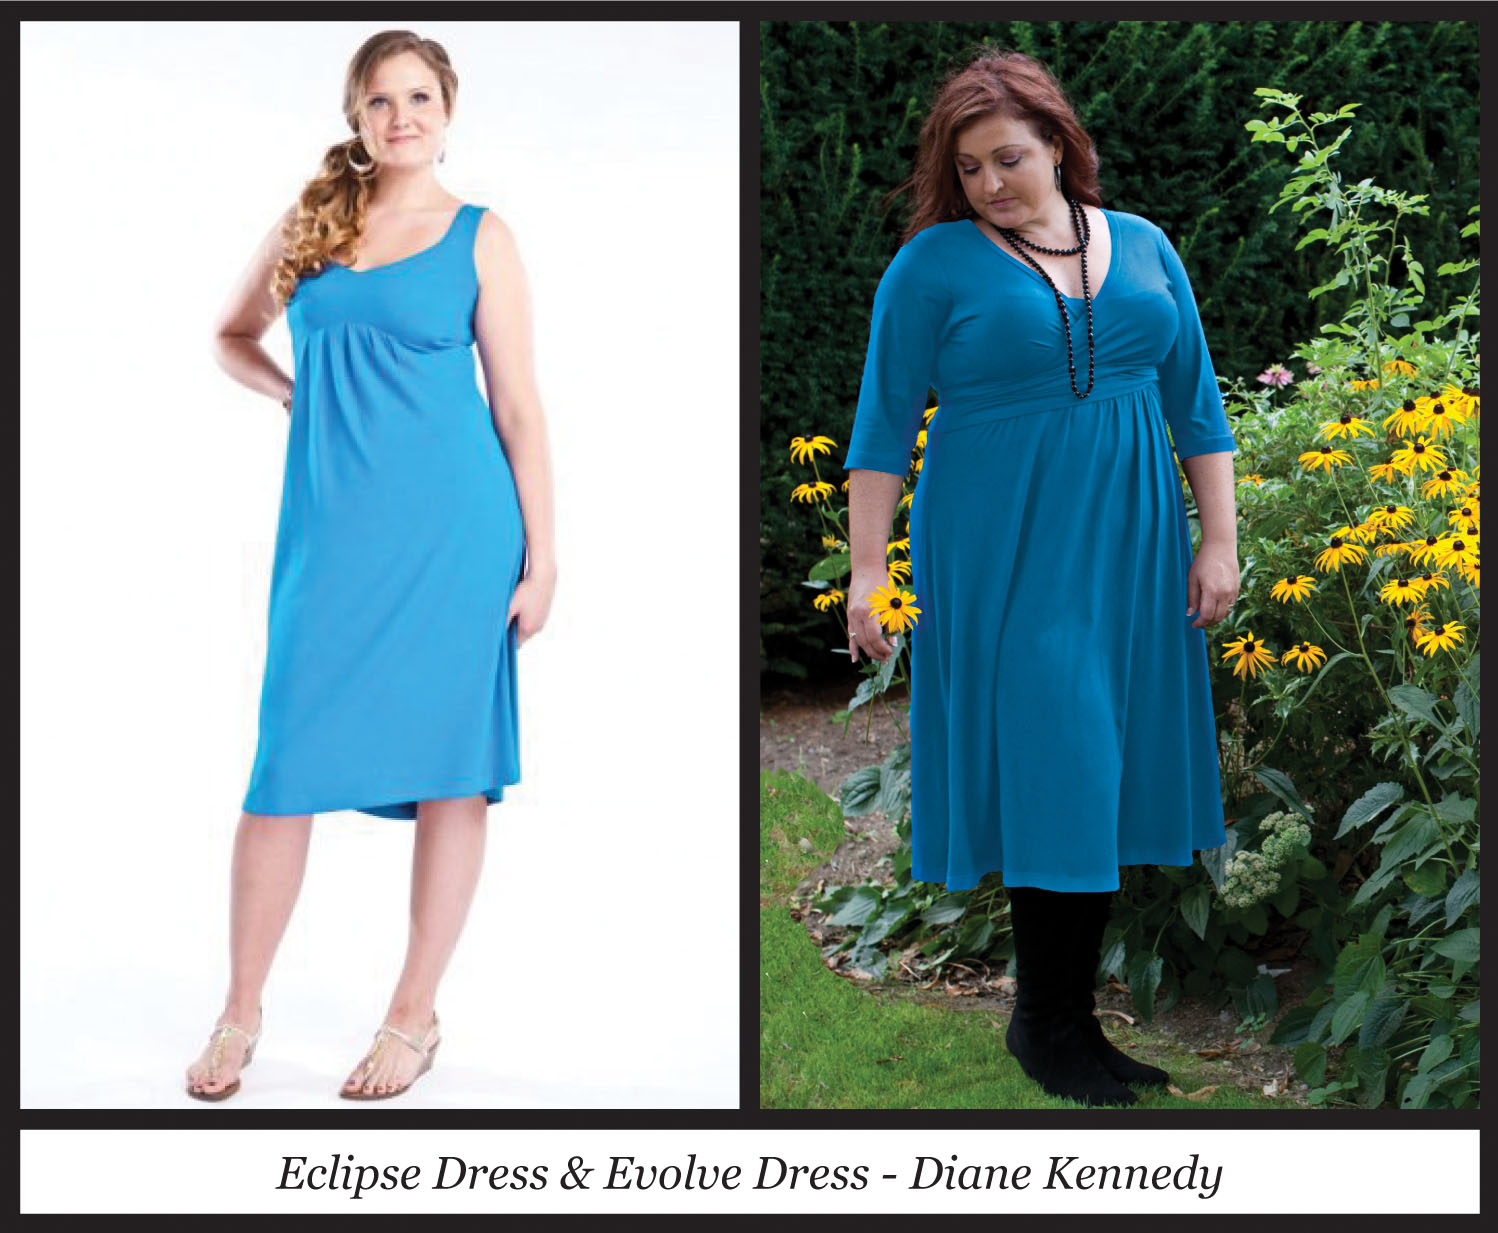 Best Dress For Plus Size Pear Shaped Body - raveitsafe